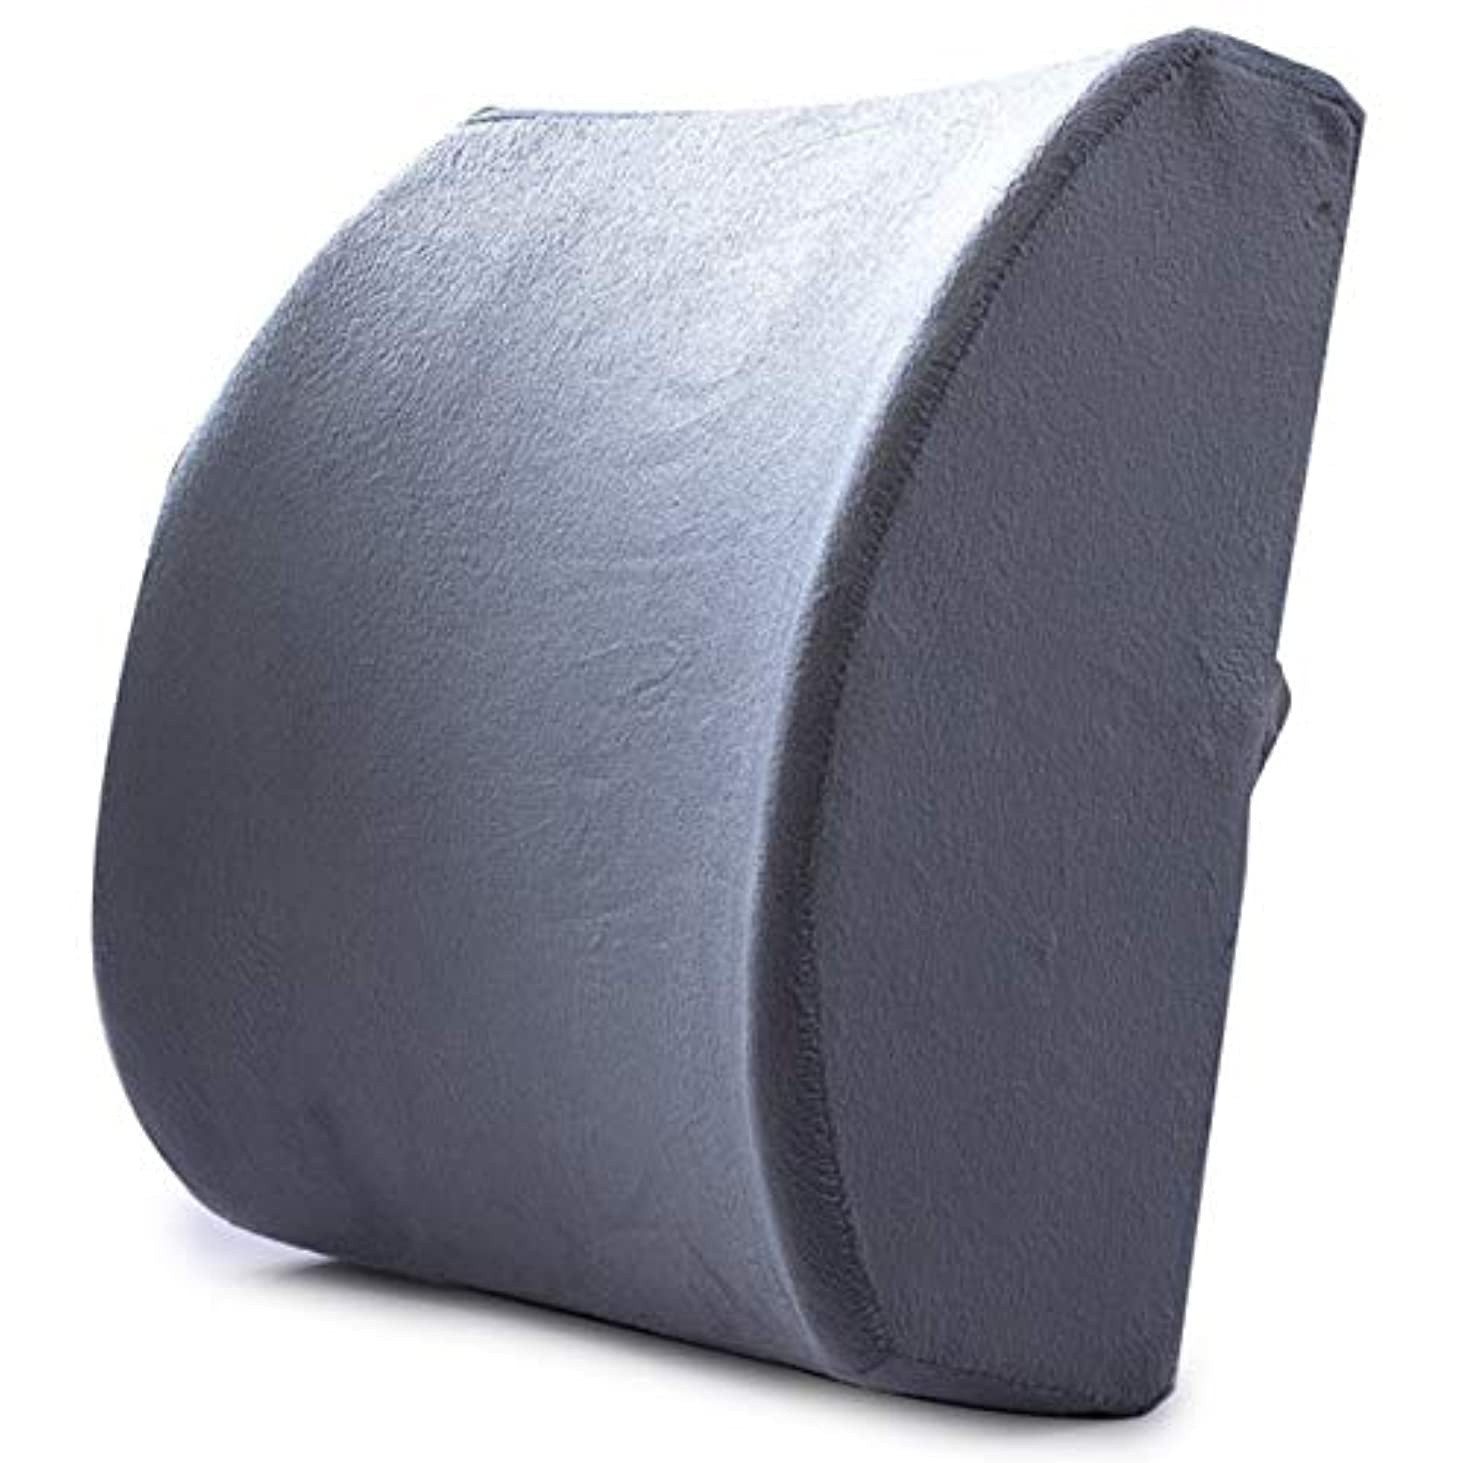 名目上の採用間に合わせMemory Foam Lumbar Support Waist Cushion Pillow For Chairs in the Car Seat Pillows Home Office Relieve Pain